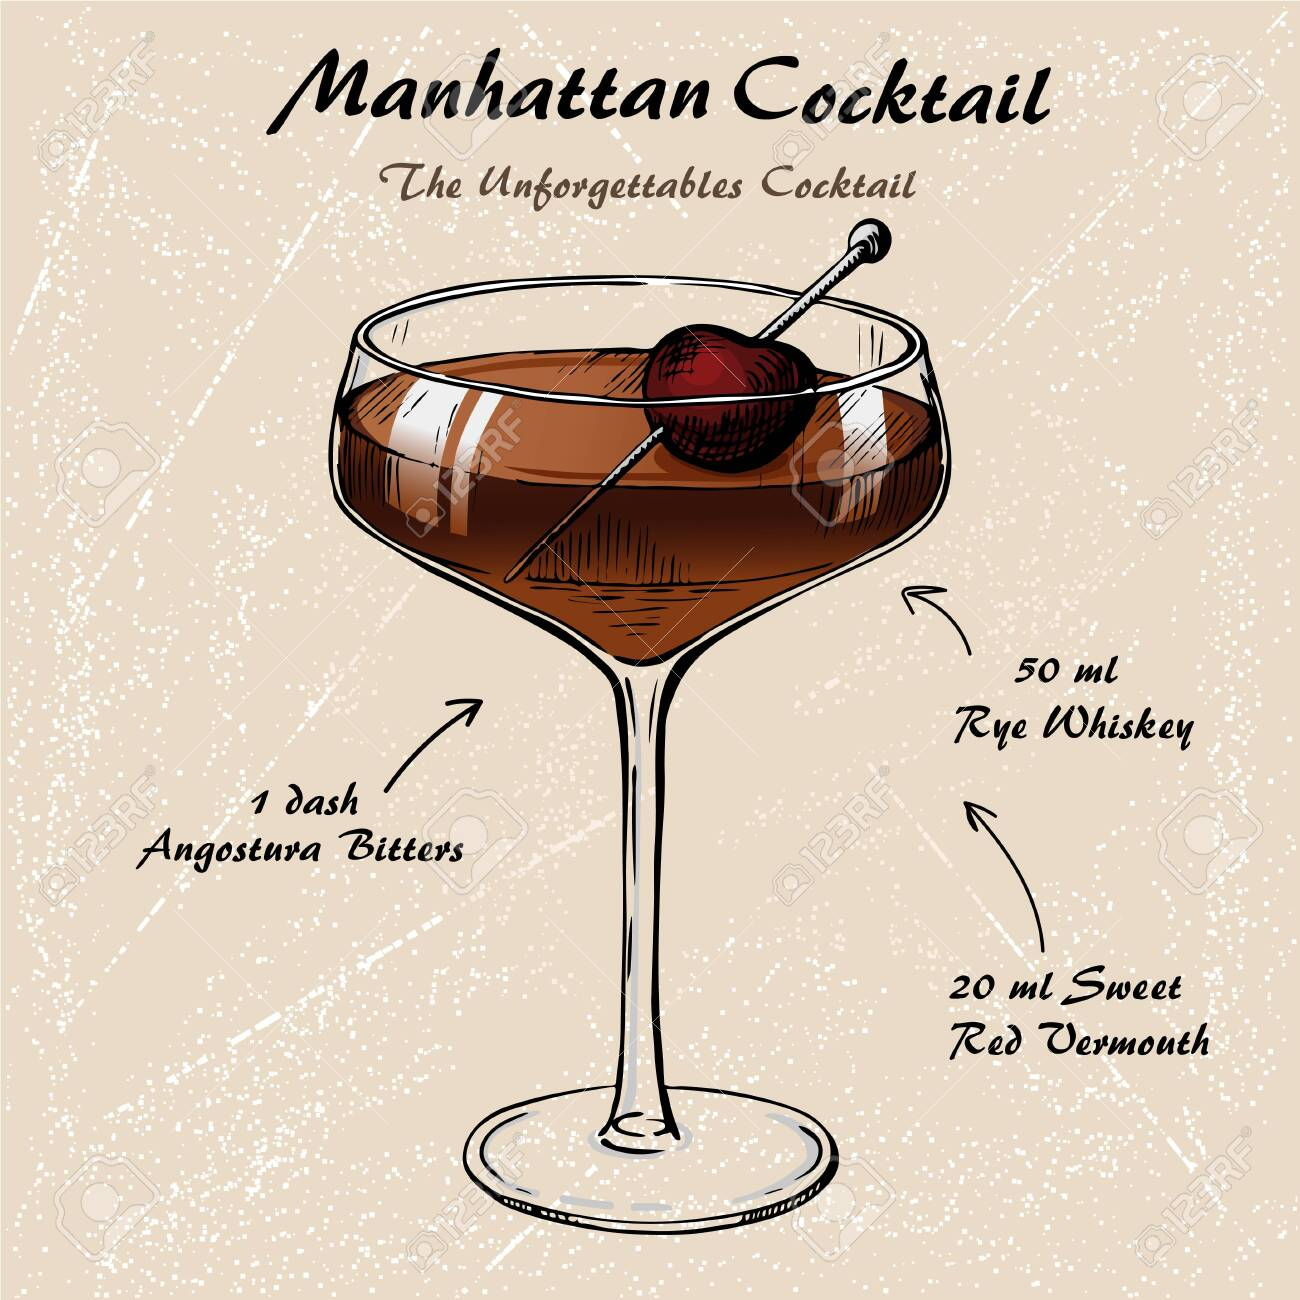 Manhattan Cocktail Recipe Vector Hahddrawn Illustration Sketch Royalty Free Cliparts Vectors And Stock Illustration Image 149829769